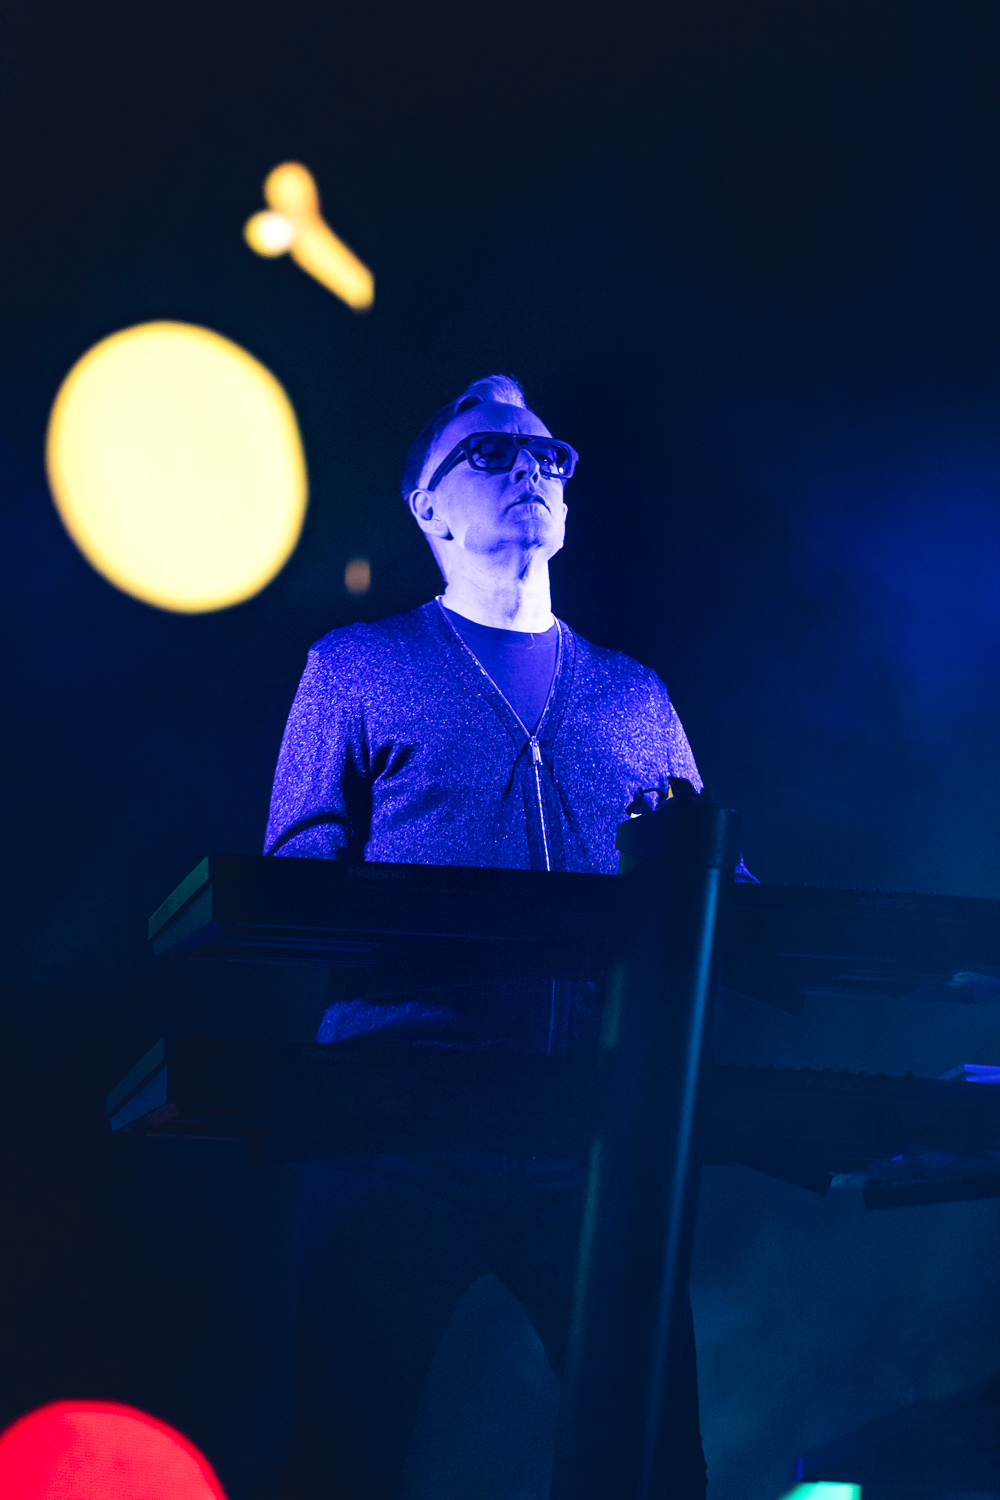 Andy Fletcher stands with keyboards at hand. Photo: Lmsorenson.net